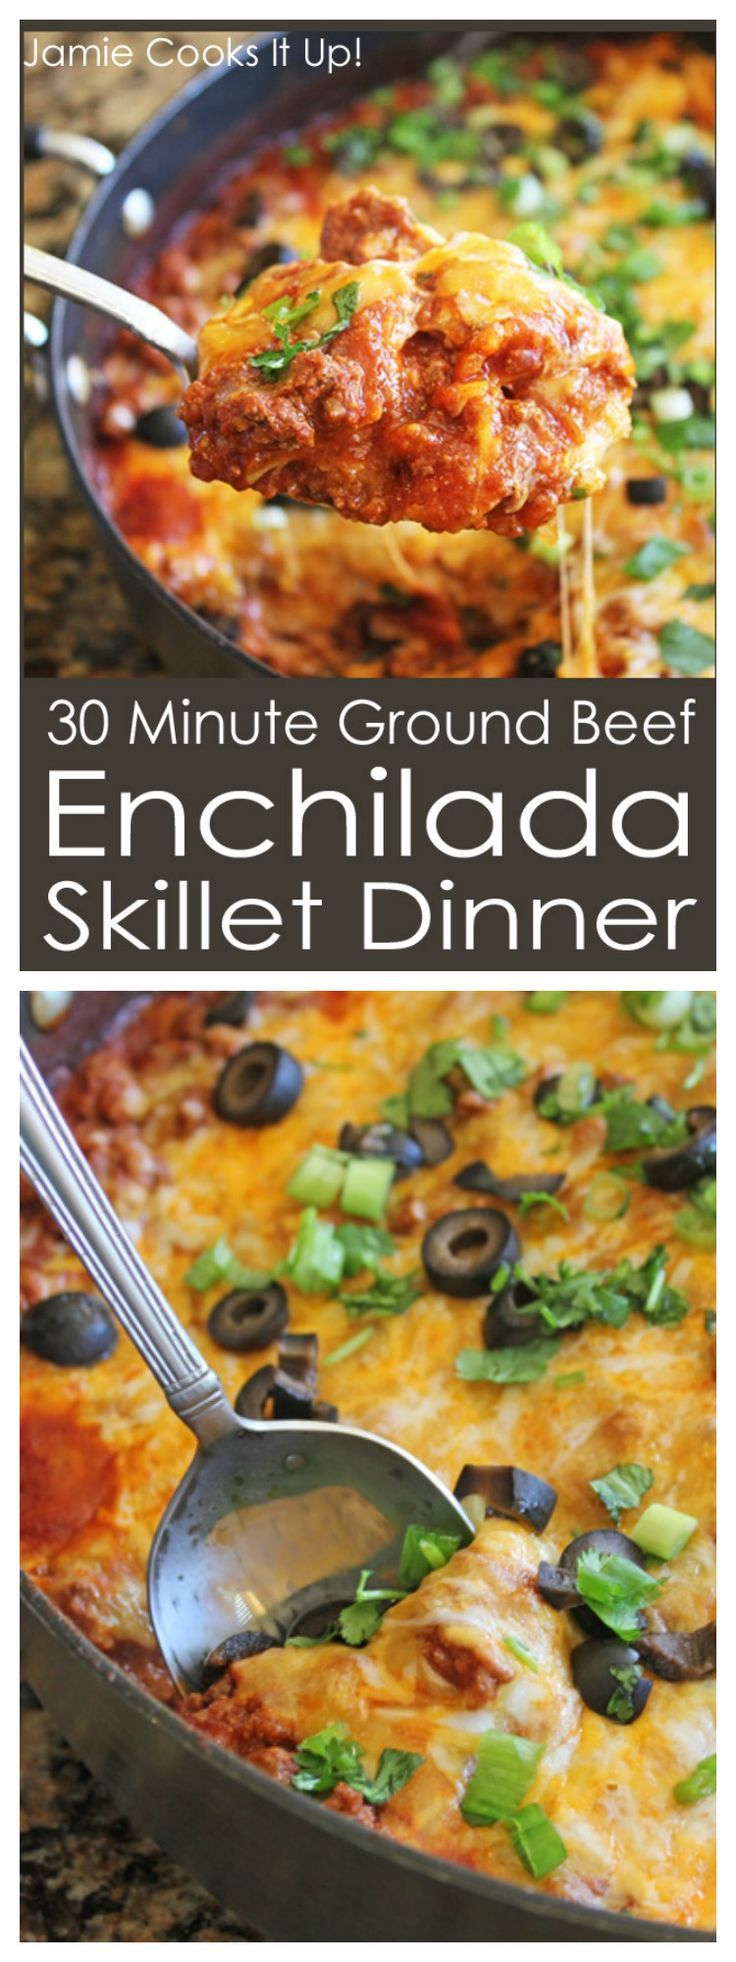 30 Minute Ground Beef Enchilada Skillet Dinner, this one is a real crowd pleaser. If Mexican Food in 30 minutes is your kind of thing. :)